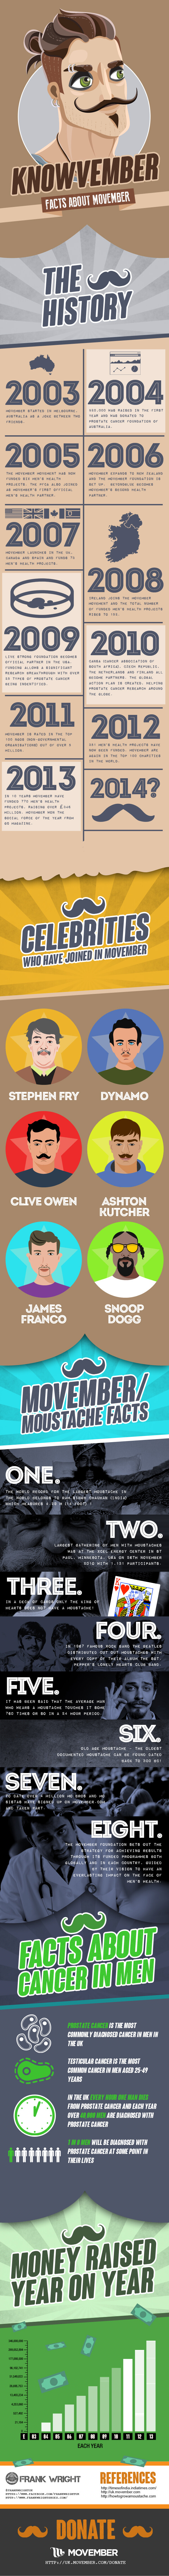 Knowvember – A Movember Fact Infographic